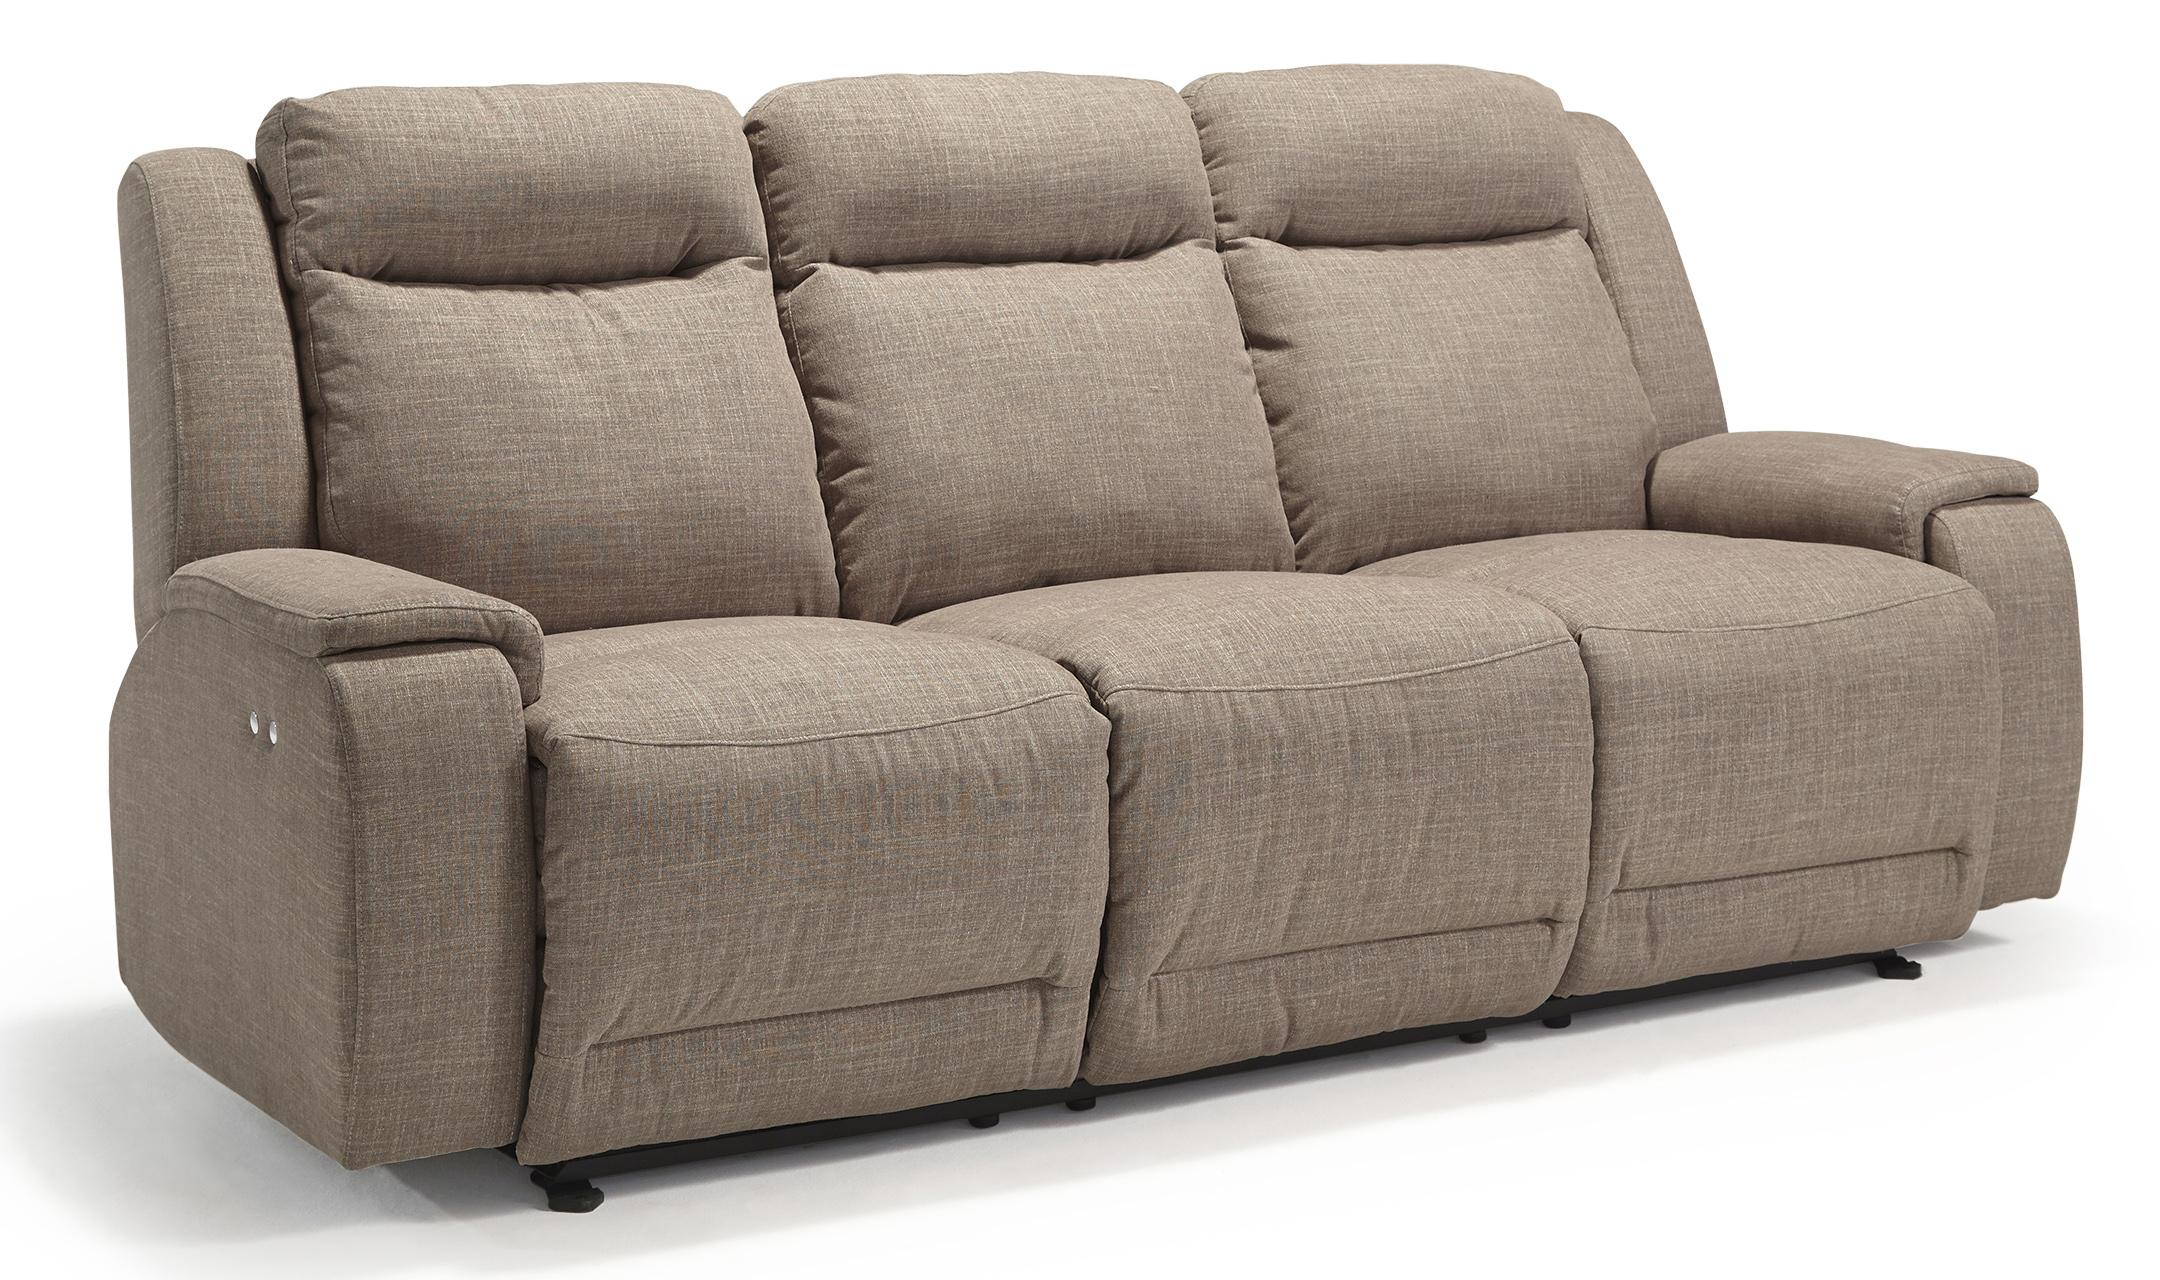 Casual Reclining Sofa with Memory Foam Cushions  sc 1 st  Wolf Furniture & Casual Reclining Sofa with Memory Foam Cushions by Best Home ... islam-shia.org